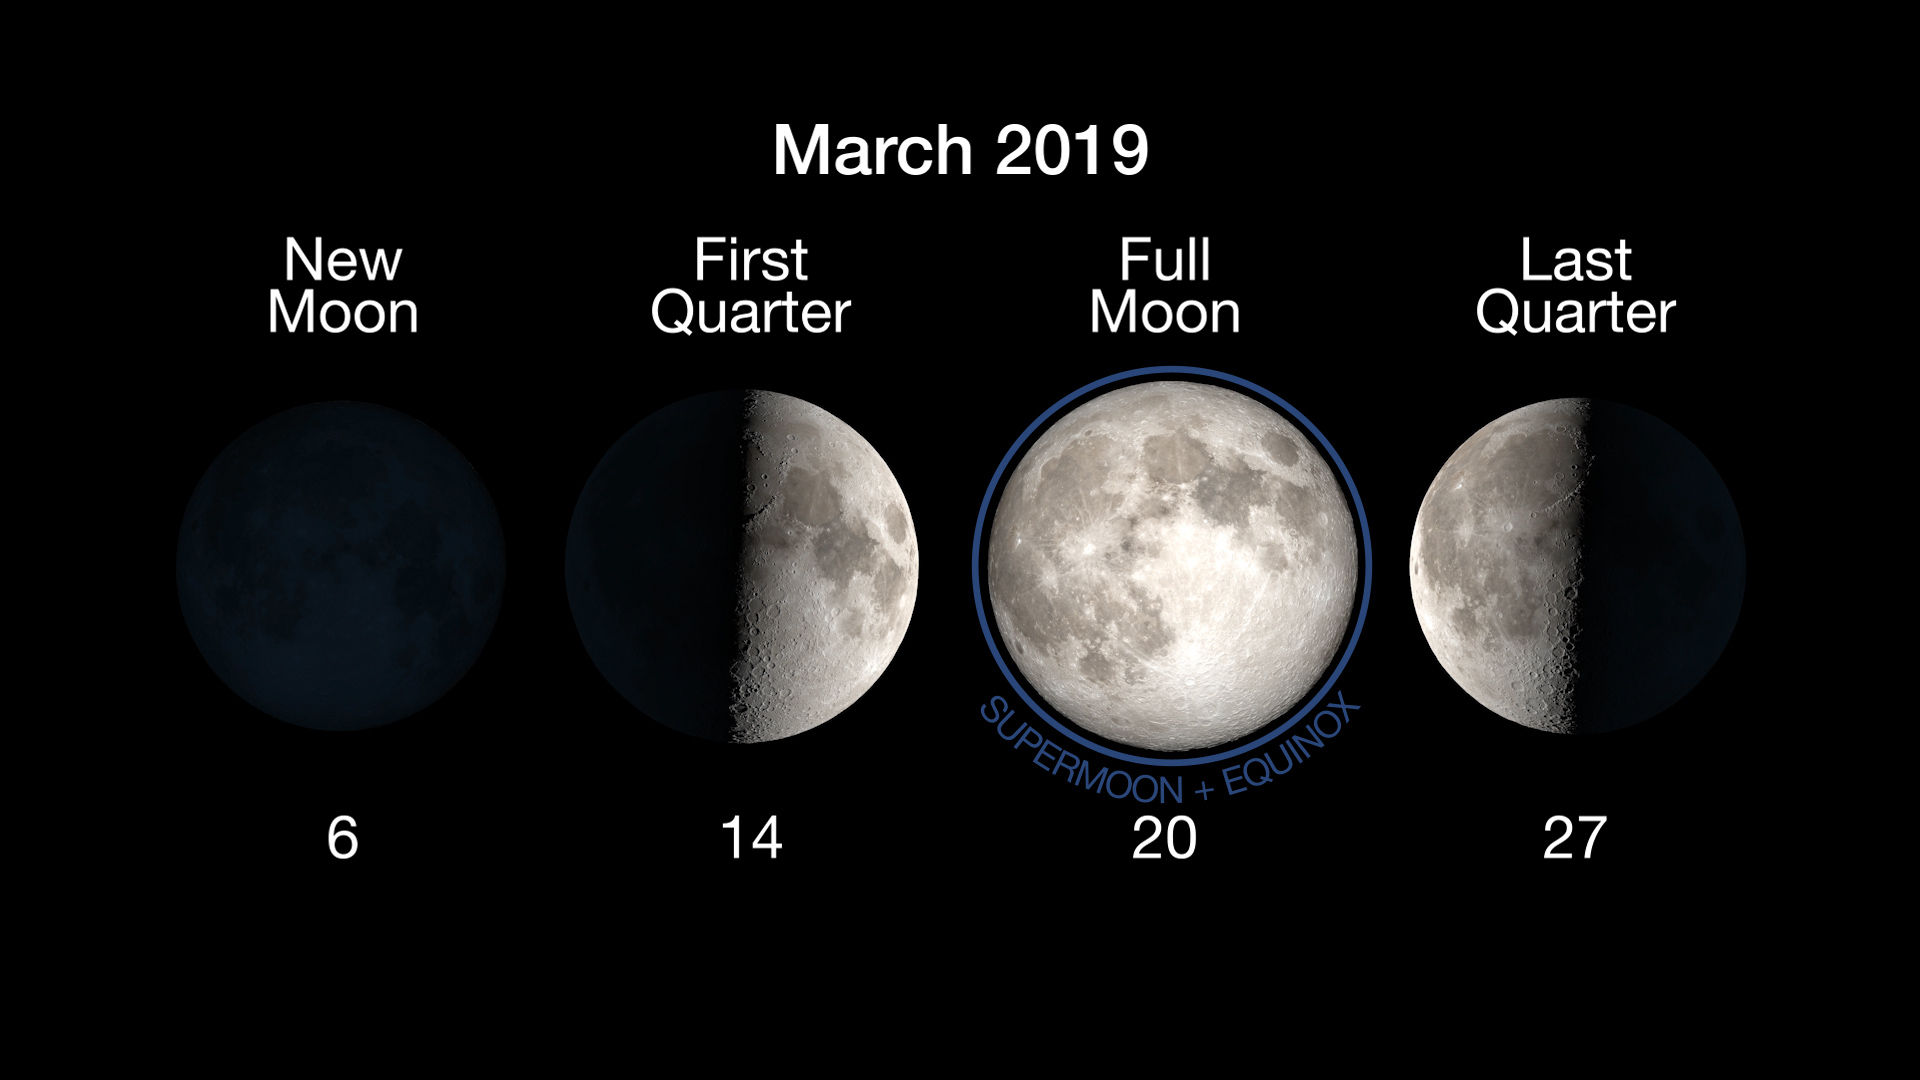 Full Moon March 2019 Wallpapers - Wallpaper Cave